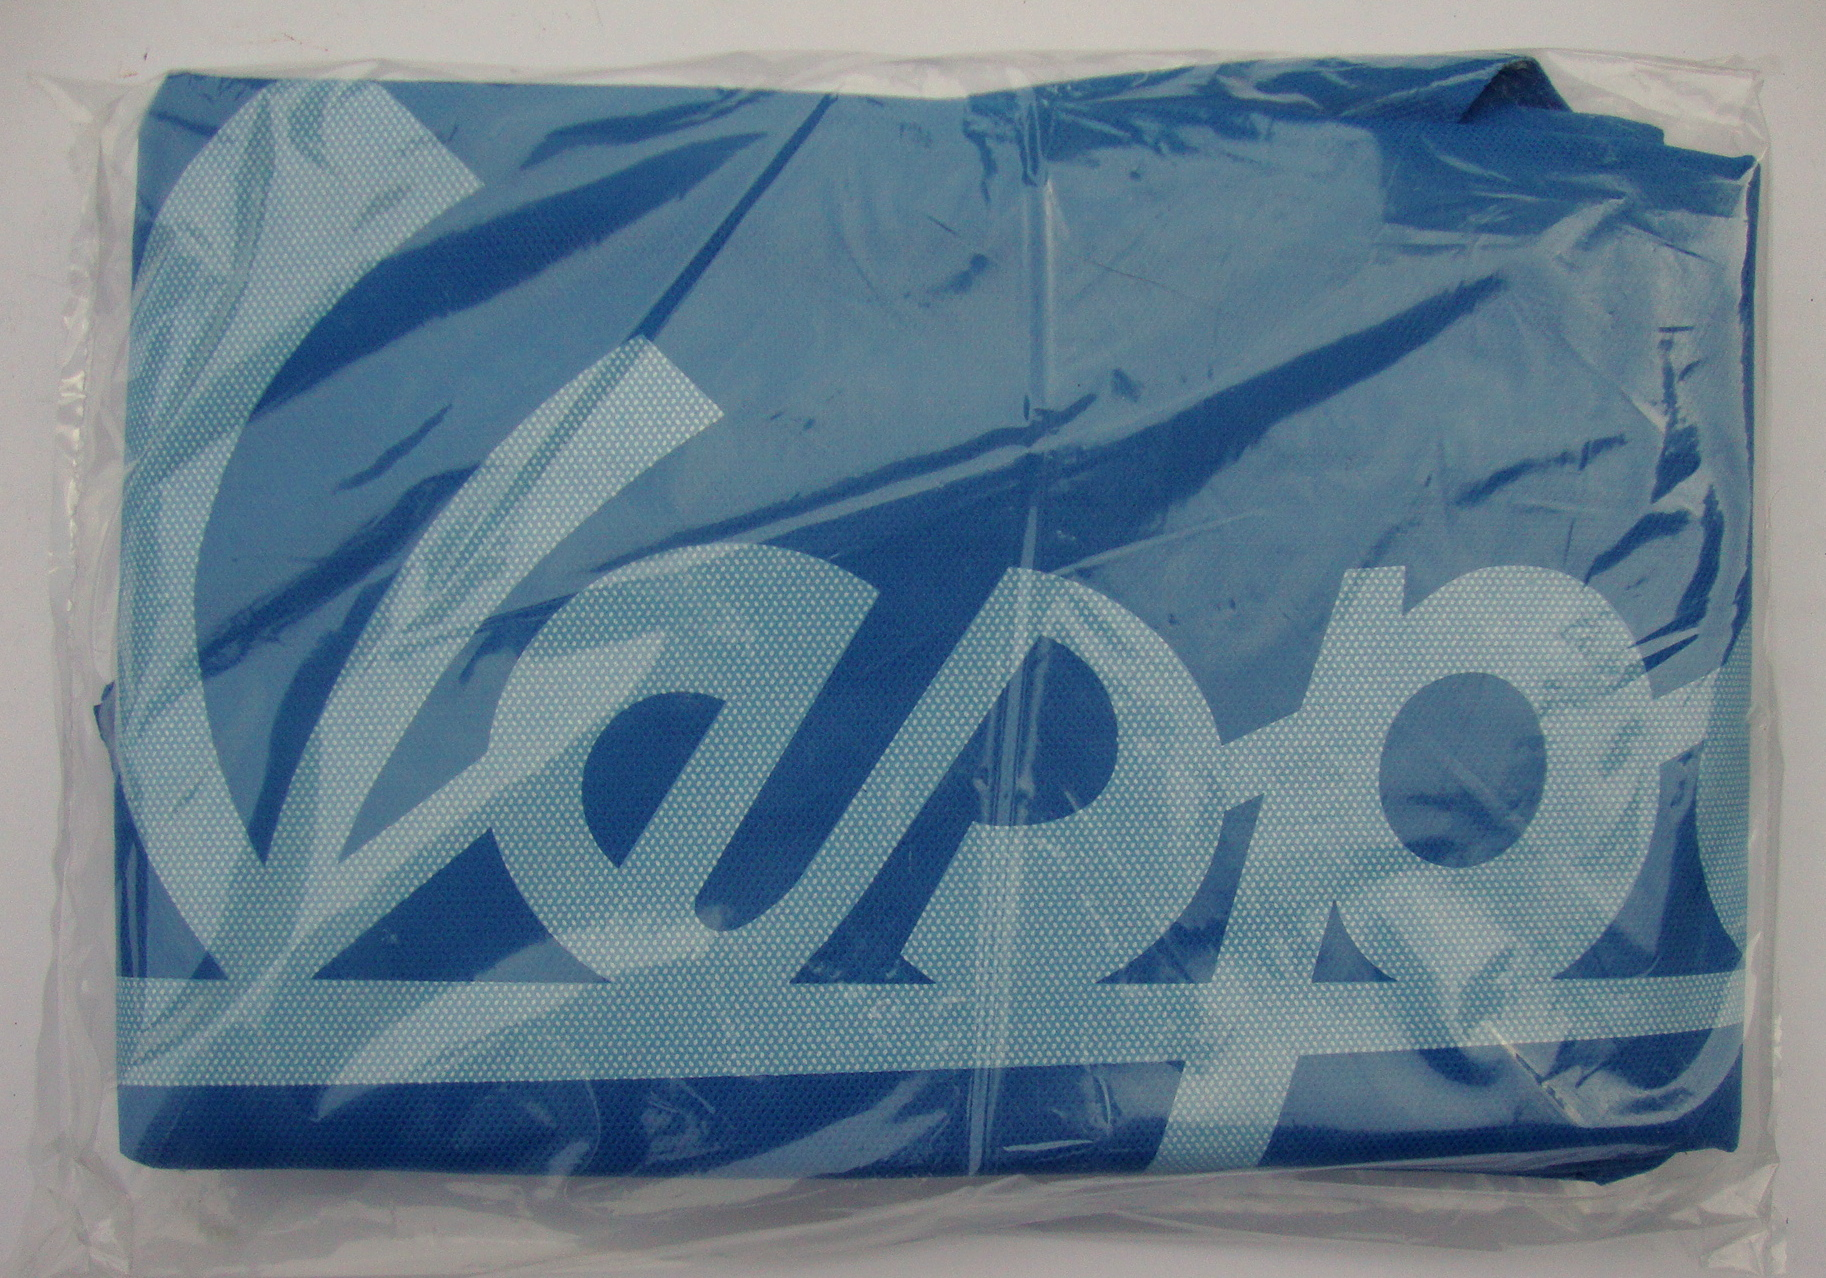 Dust cover for Vespa, blue